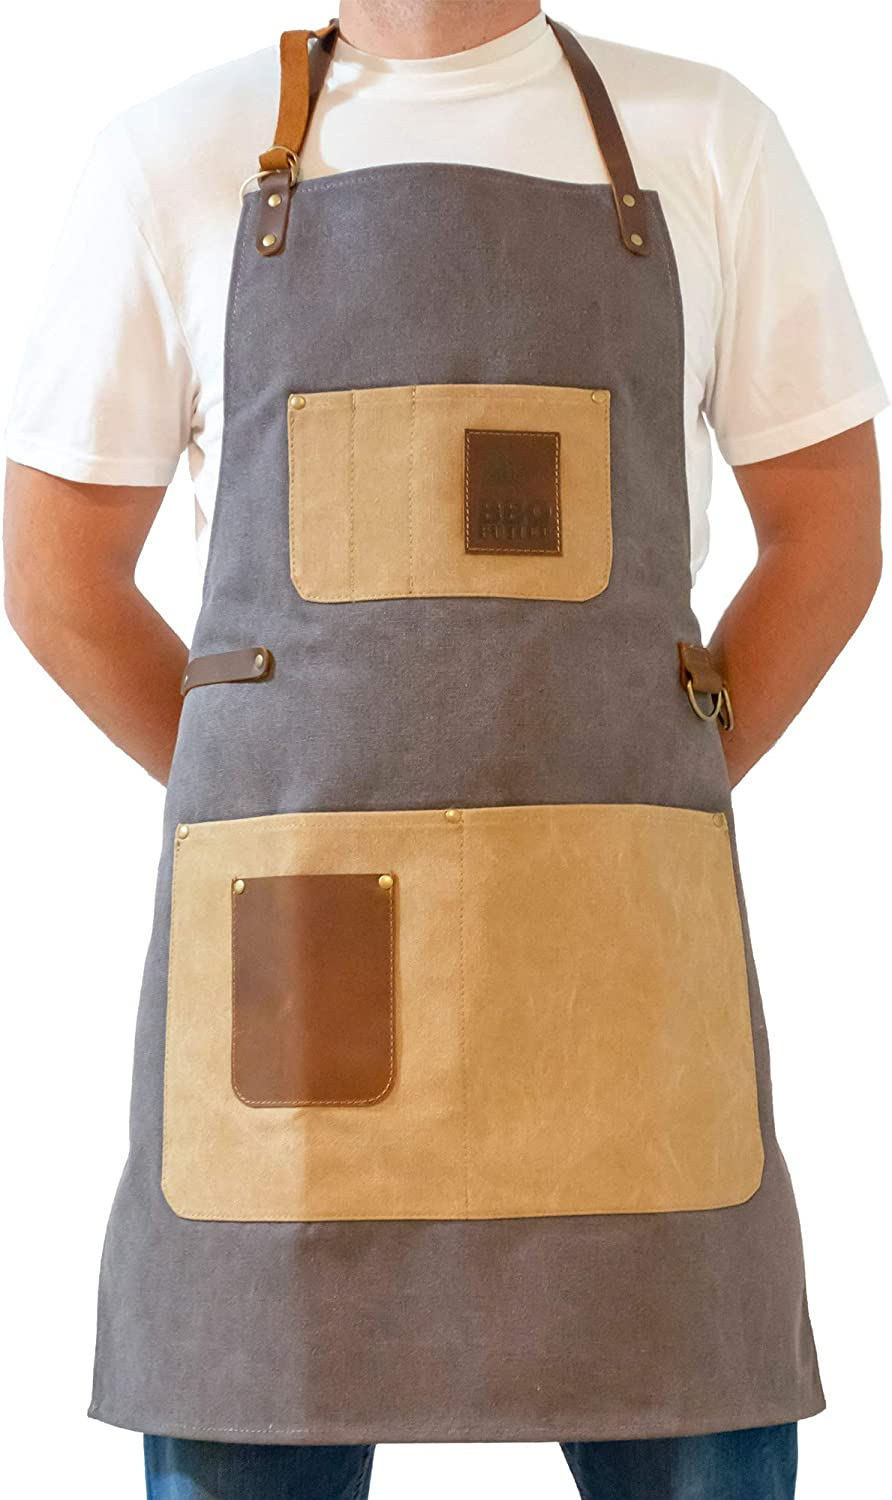 BBQ Butler Challenge the lowest price of Japan Grill Apron Our shop OFFers the best service - Adjustable Canvas Heavy Cooking